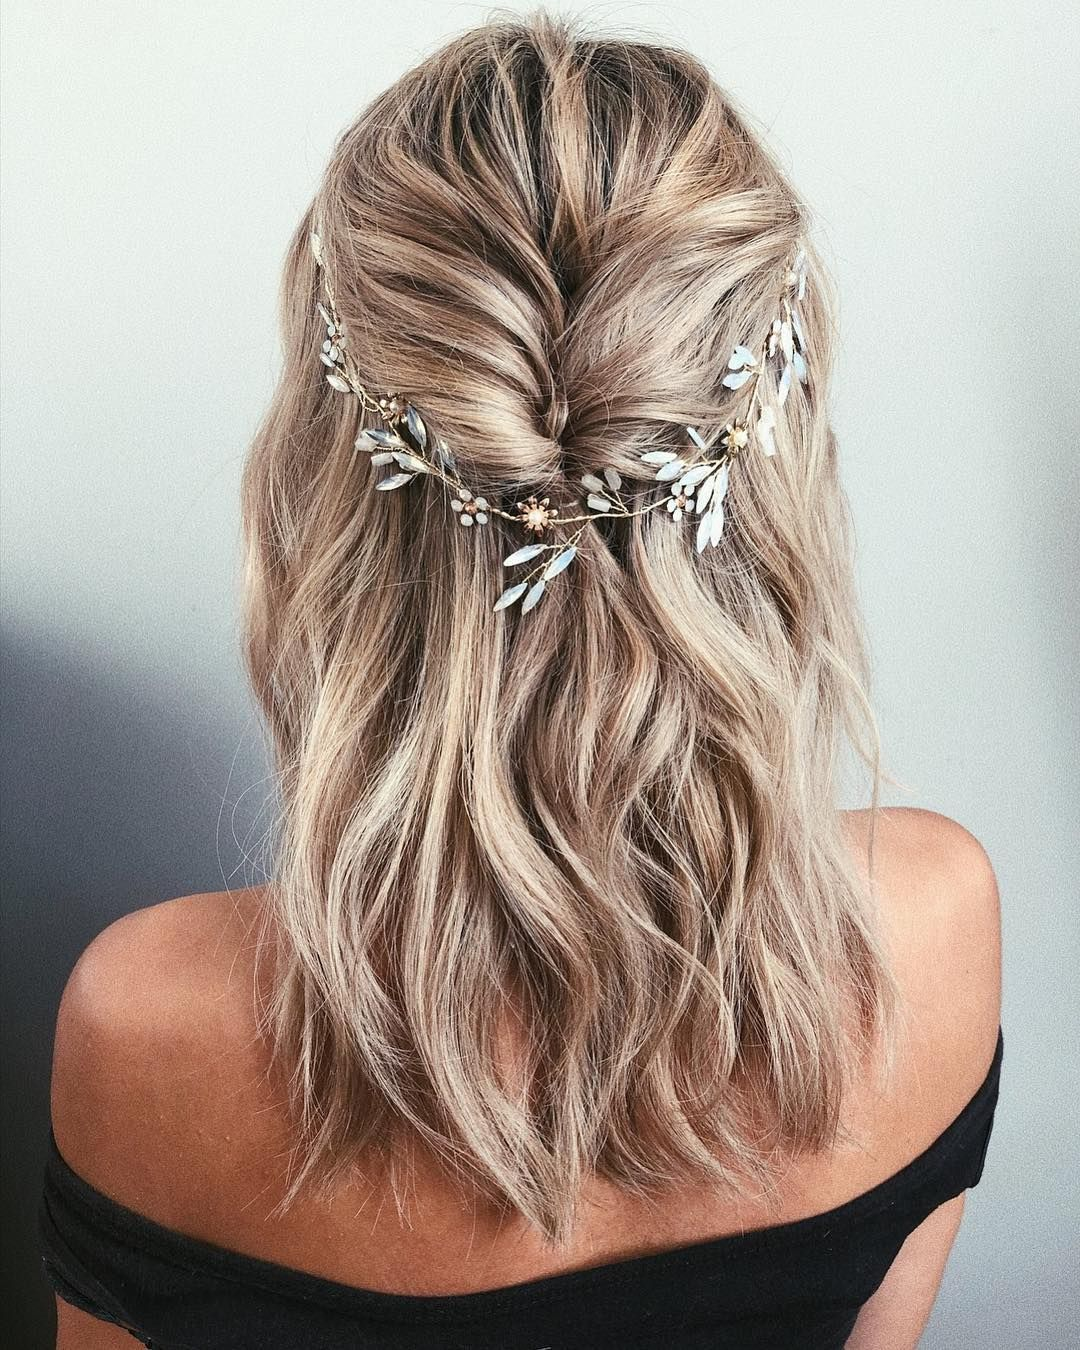 52 special occasion hairstyles for long hair | hairstyle